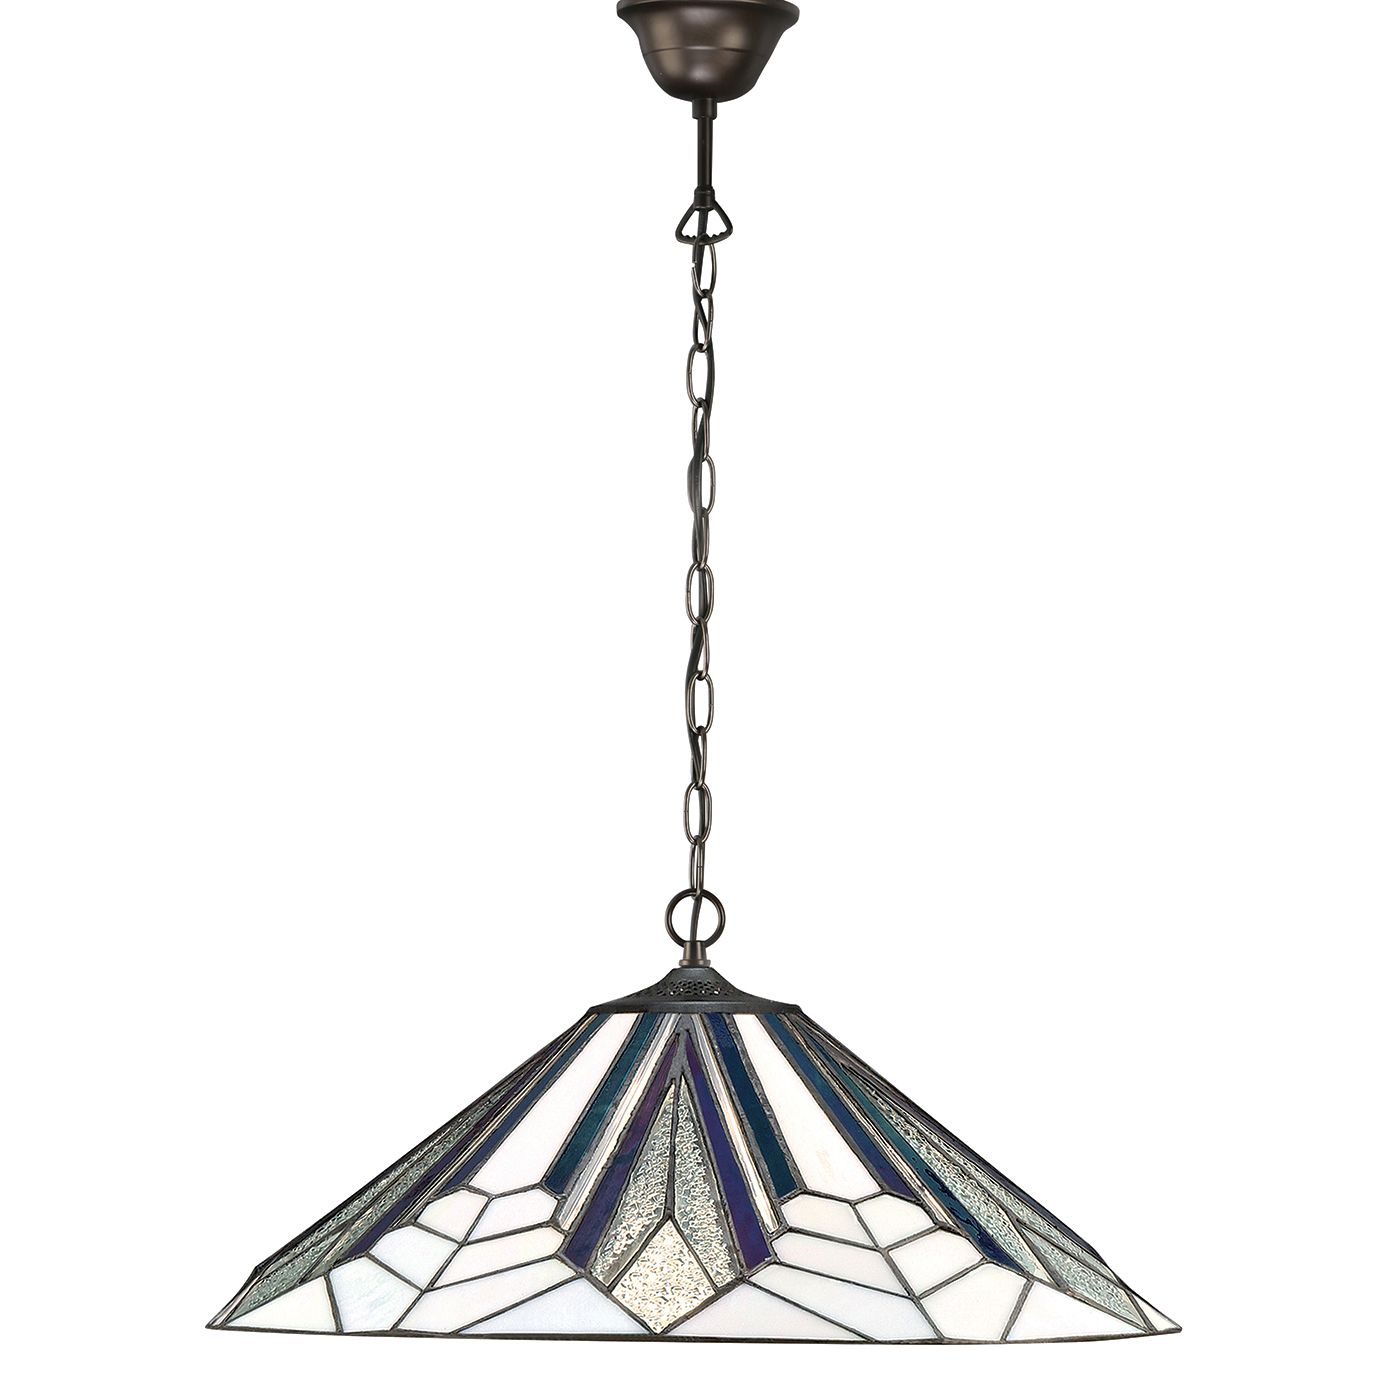 Tiffany Astoria Large 1 Light Ceiling Pendant Light